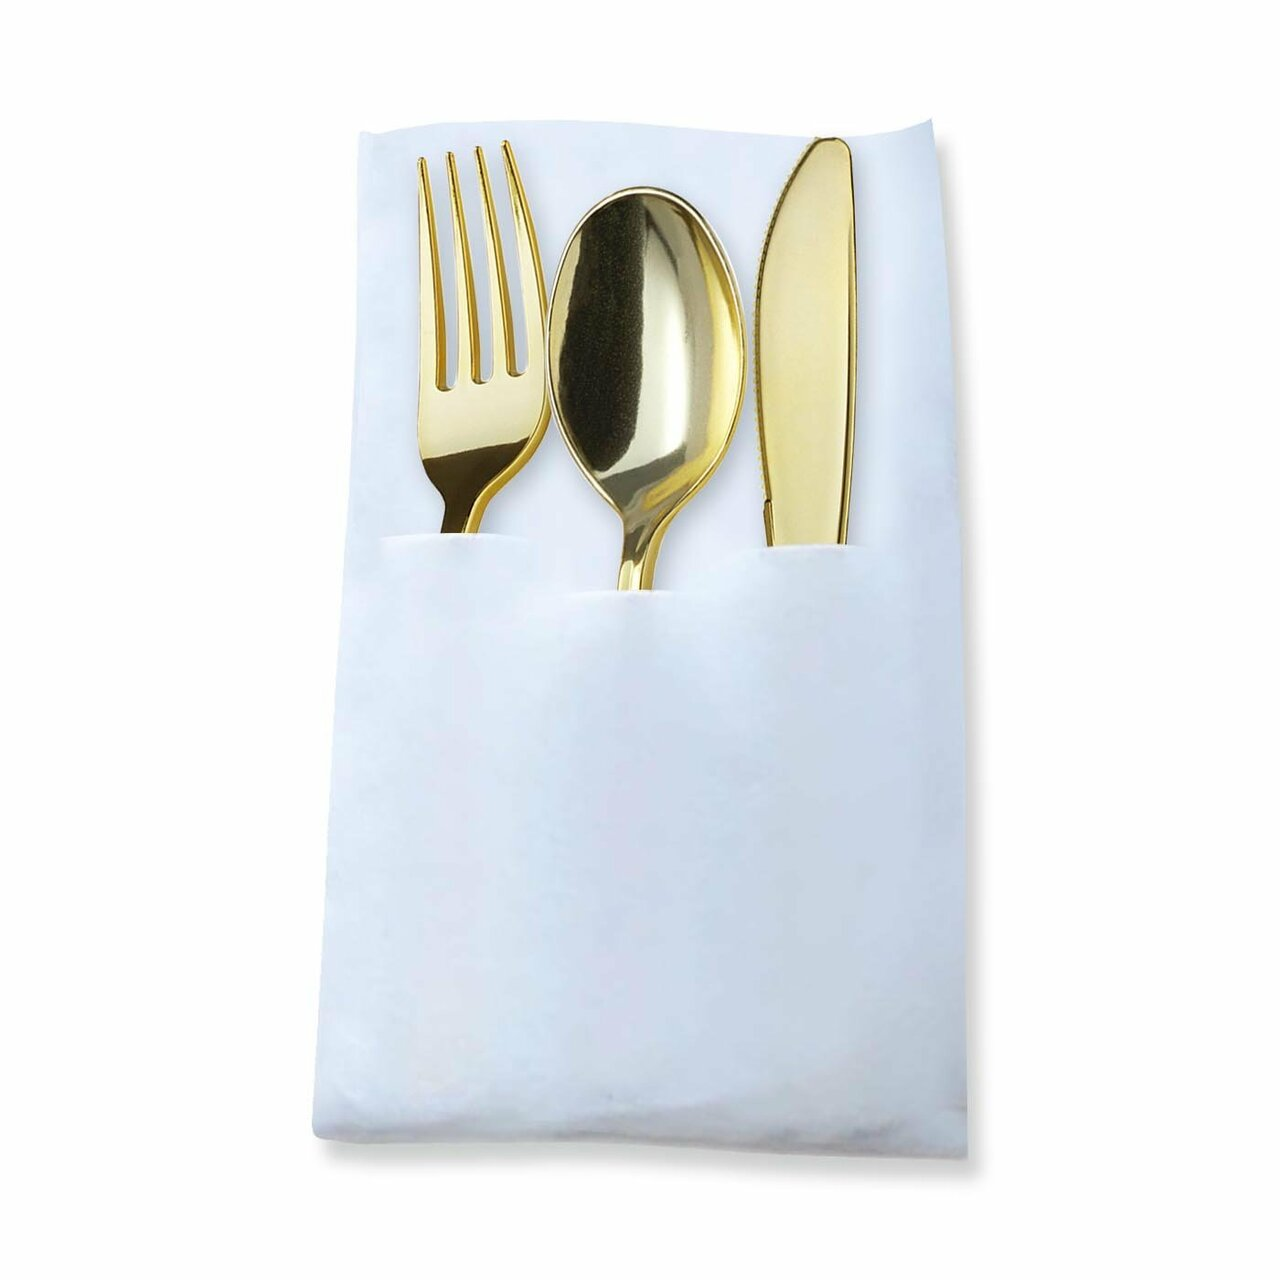 GOLD DISPOSABLE PLASTIC CUTLERY IN WHITE POCKET NAPKIN SET - 7 NAPKINS, 7 FORKS, 7 KNIVES, AND 7 SPOONS